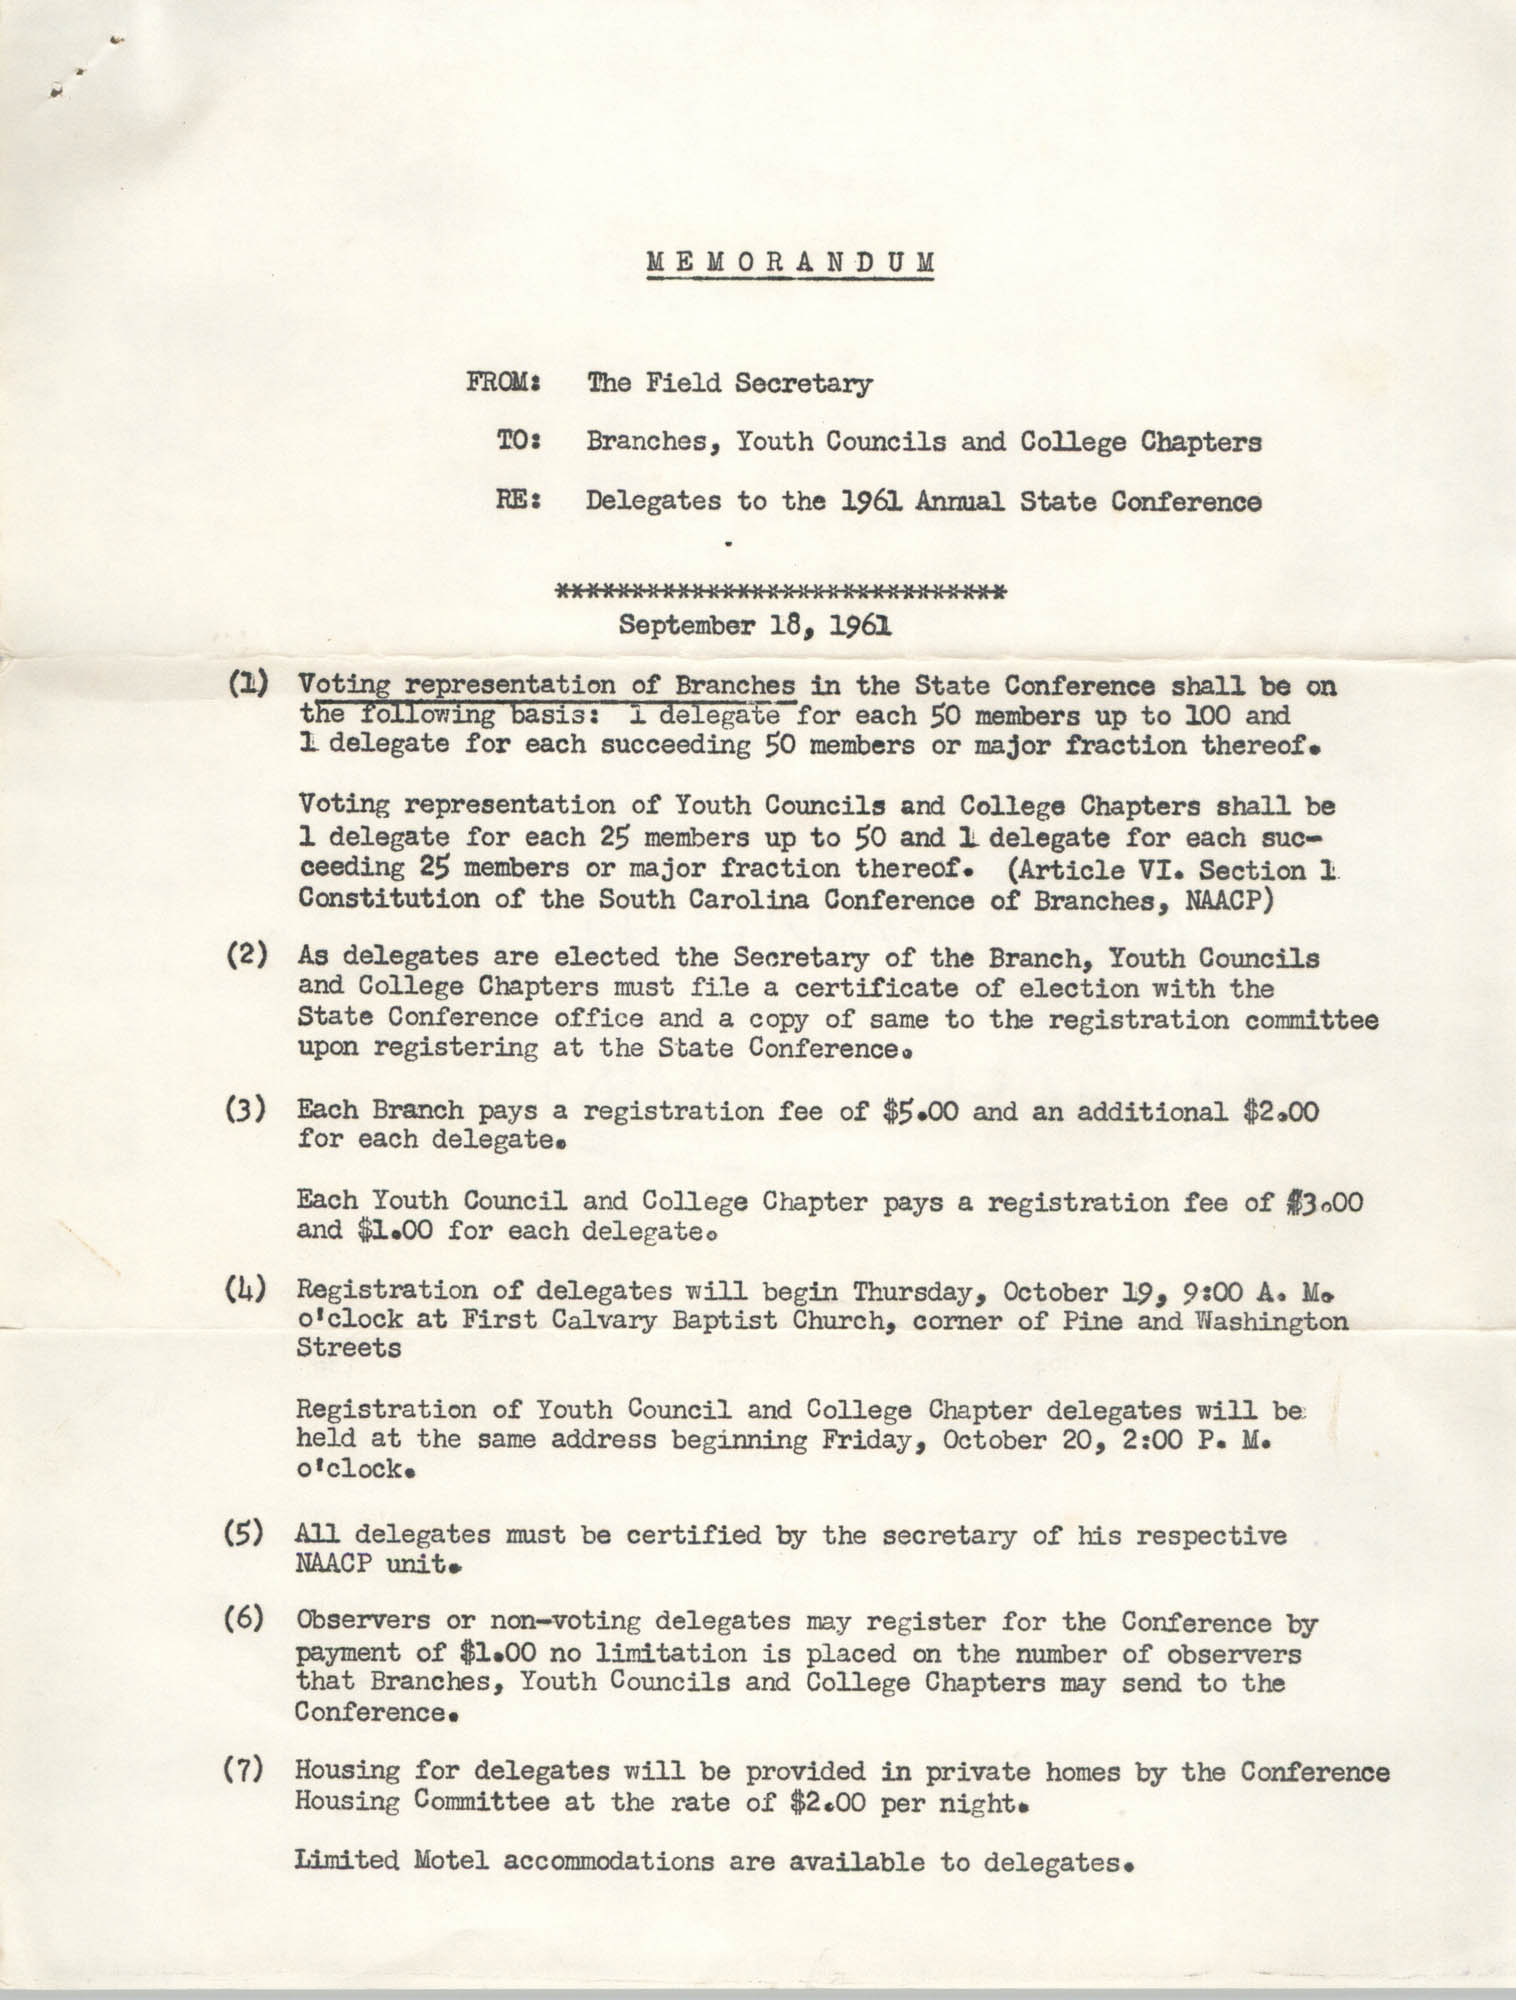 NAACP Memorandum, September 18, 1961